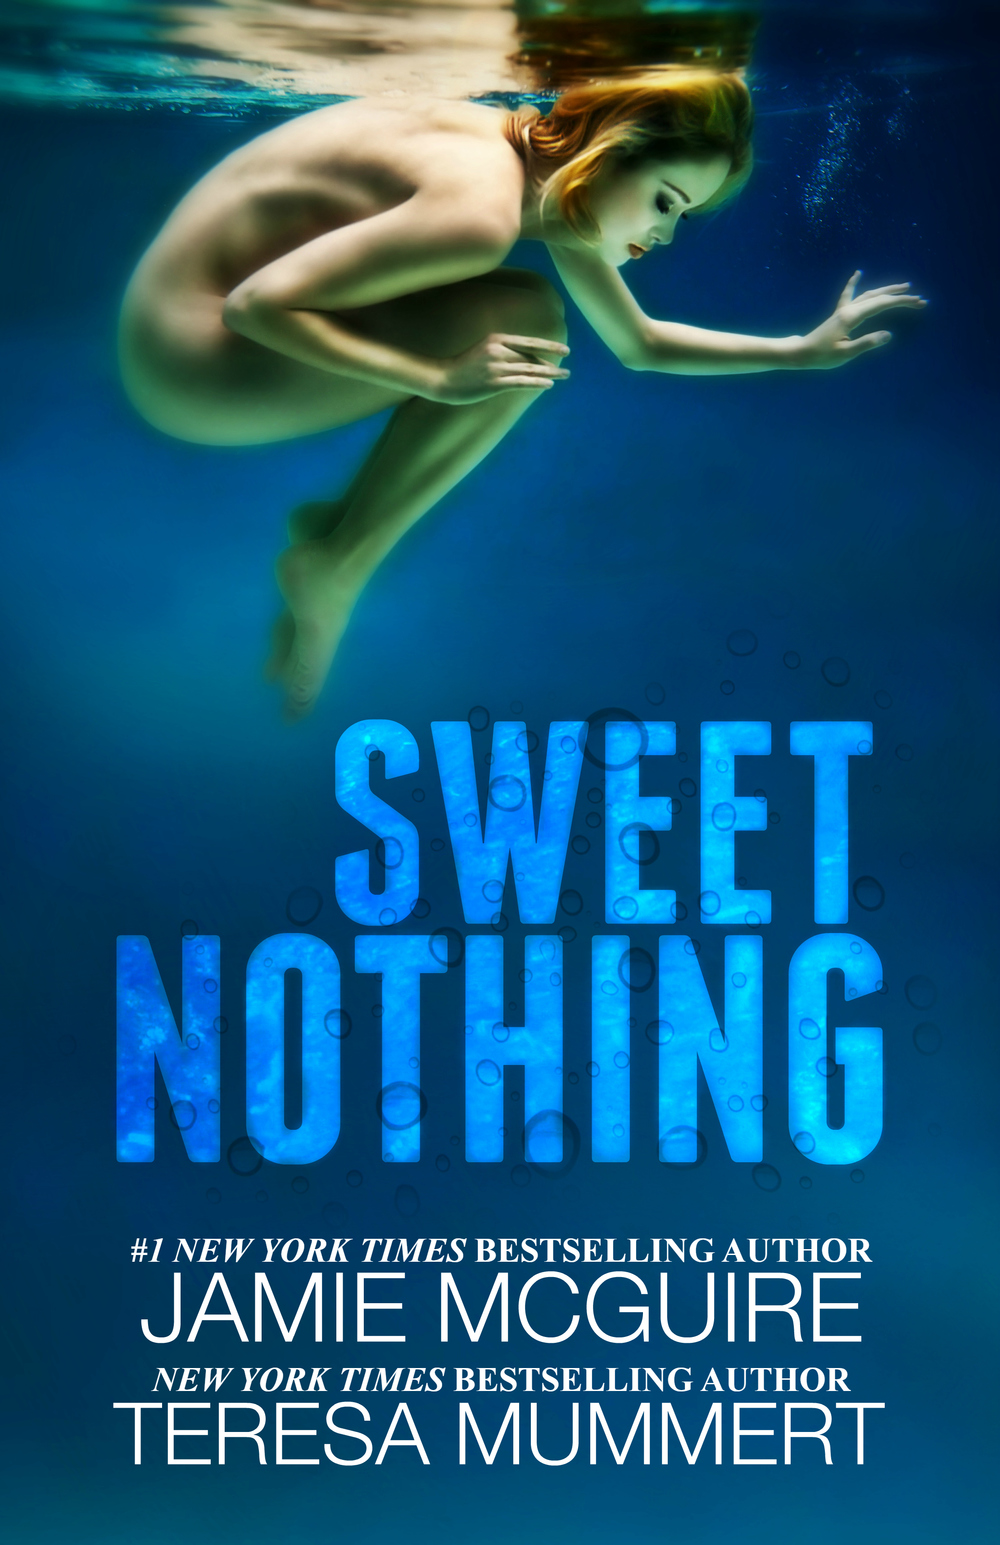 Sweet-Nothing-Cover-1.jpg